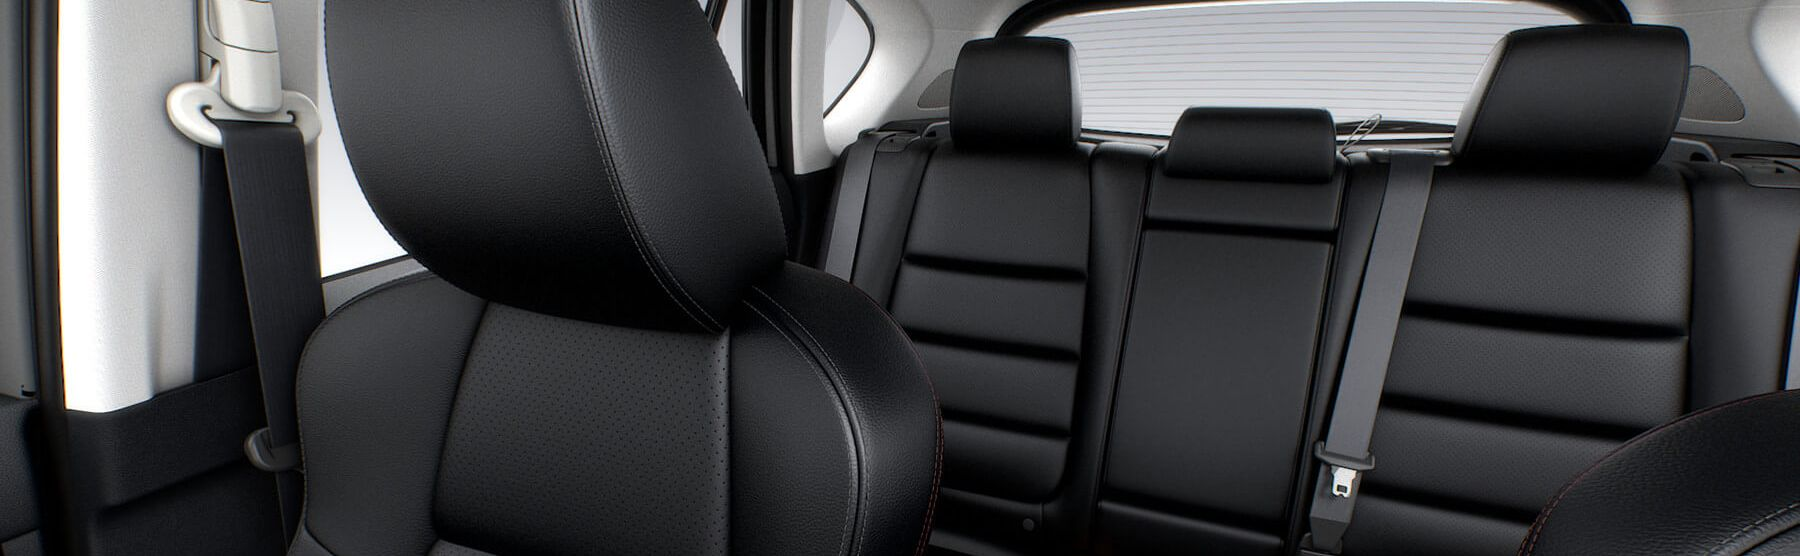 Mazda CX-5 Luxurious Upholstery